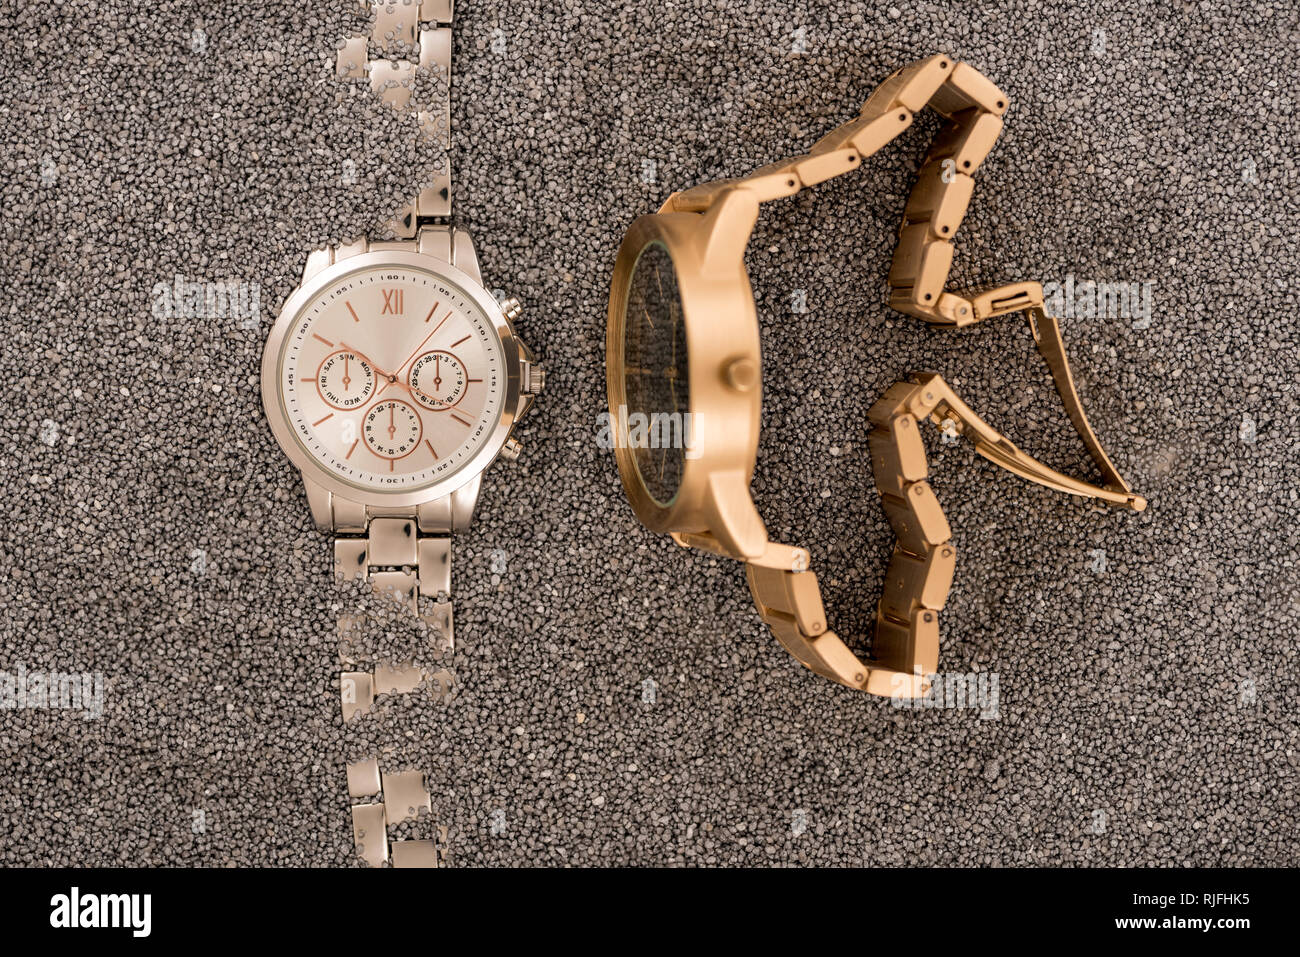 top view of wristwatches lying on golden sand - Stock Image